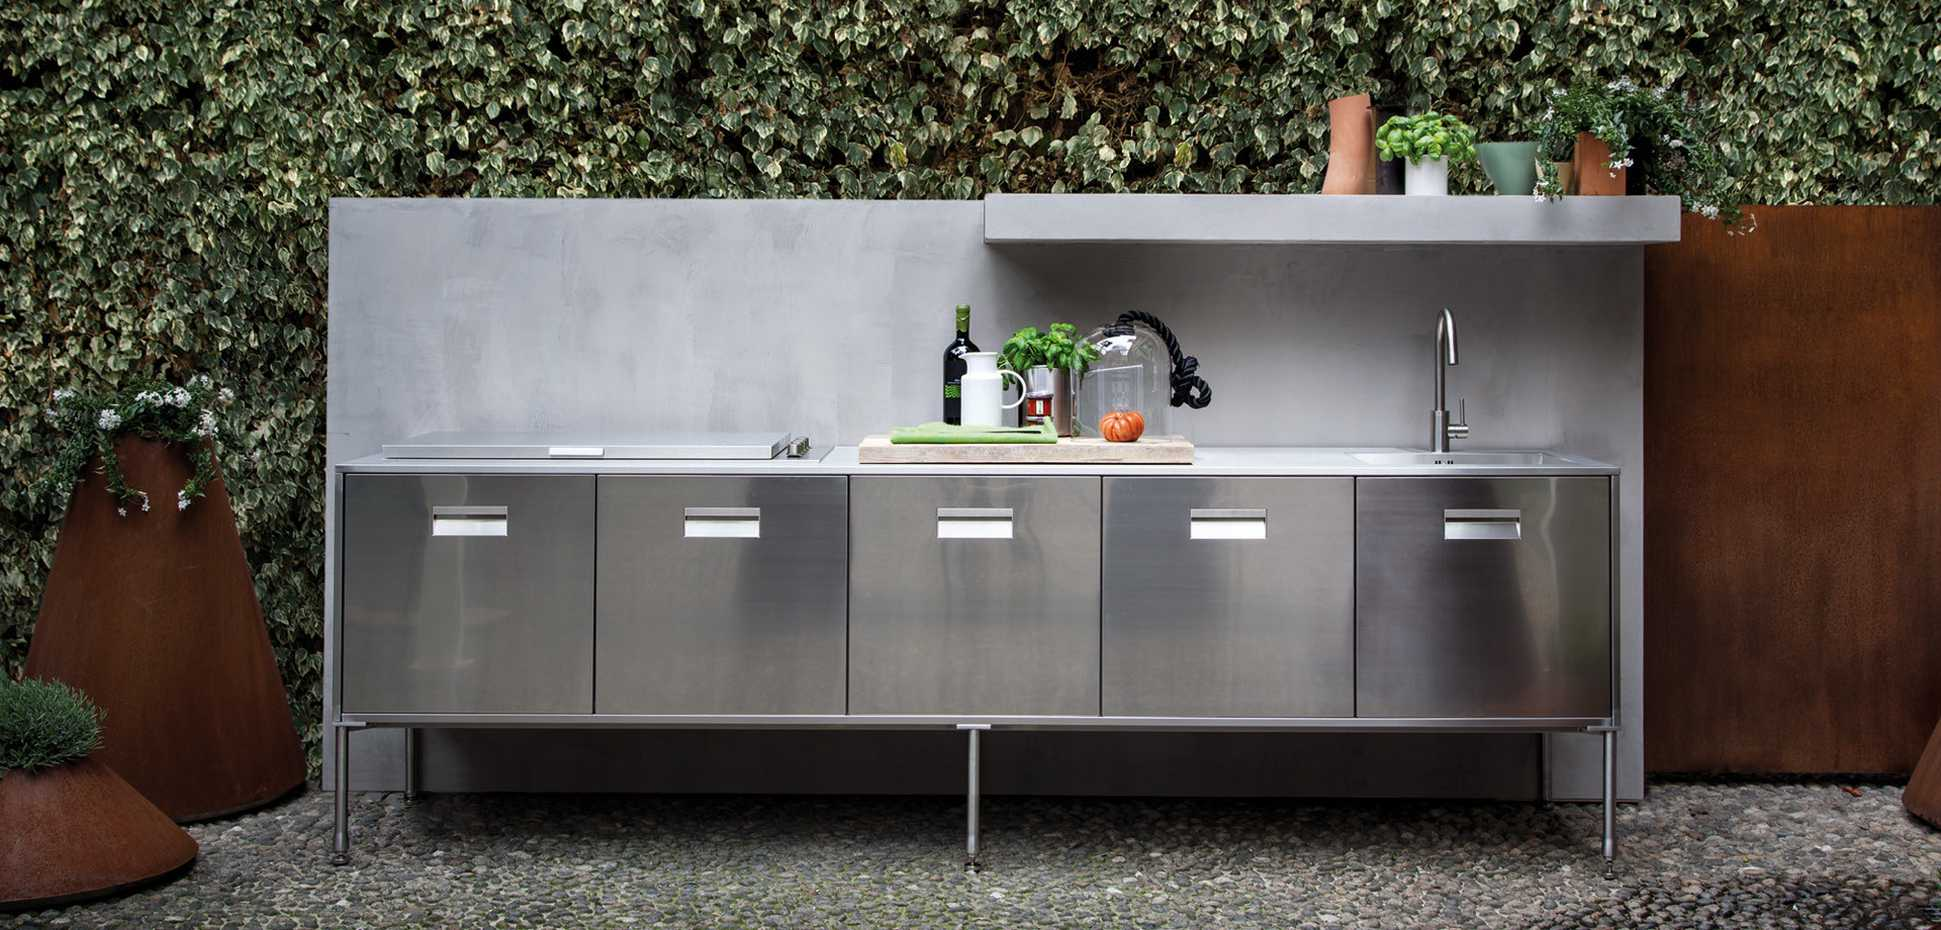 Artusi Outdoor by Arclinea product image 1